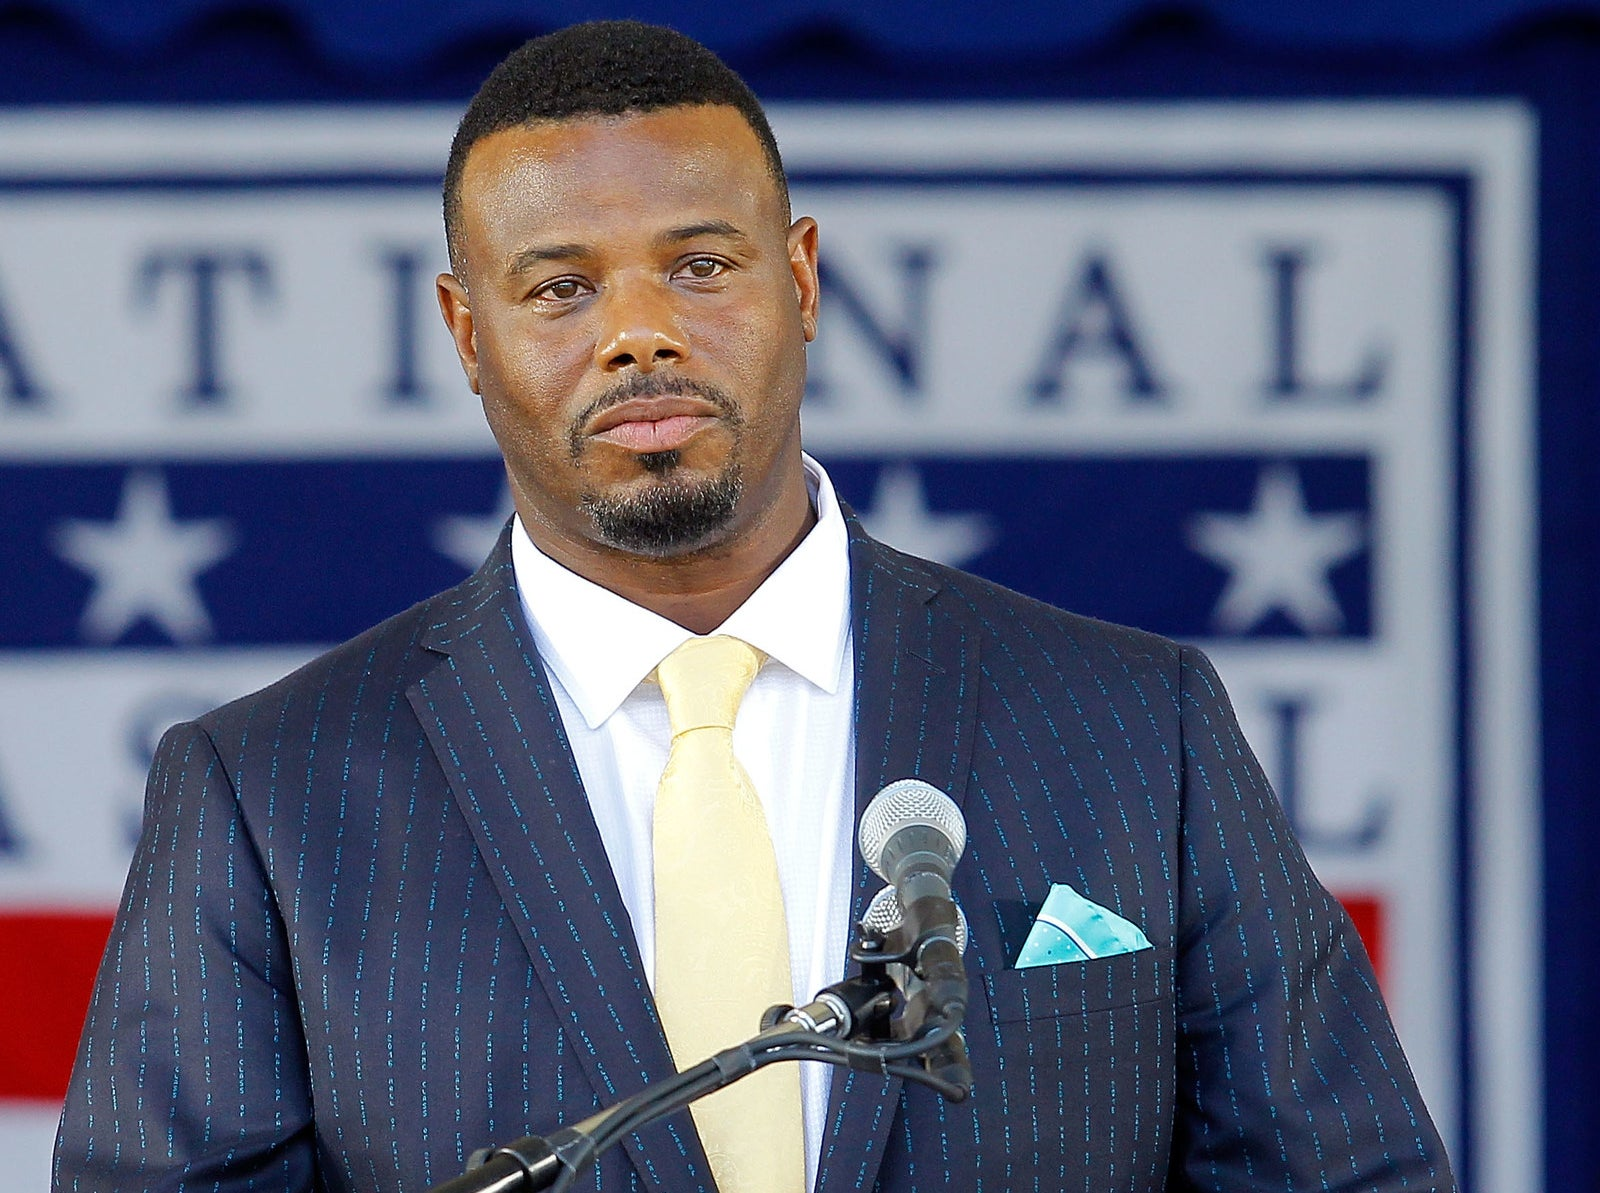 And this is what Ken Griffey Jr. looks like today. As you can see, he's still easy on the eyes.